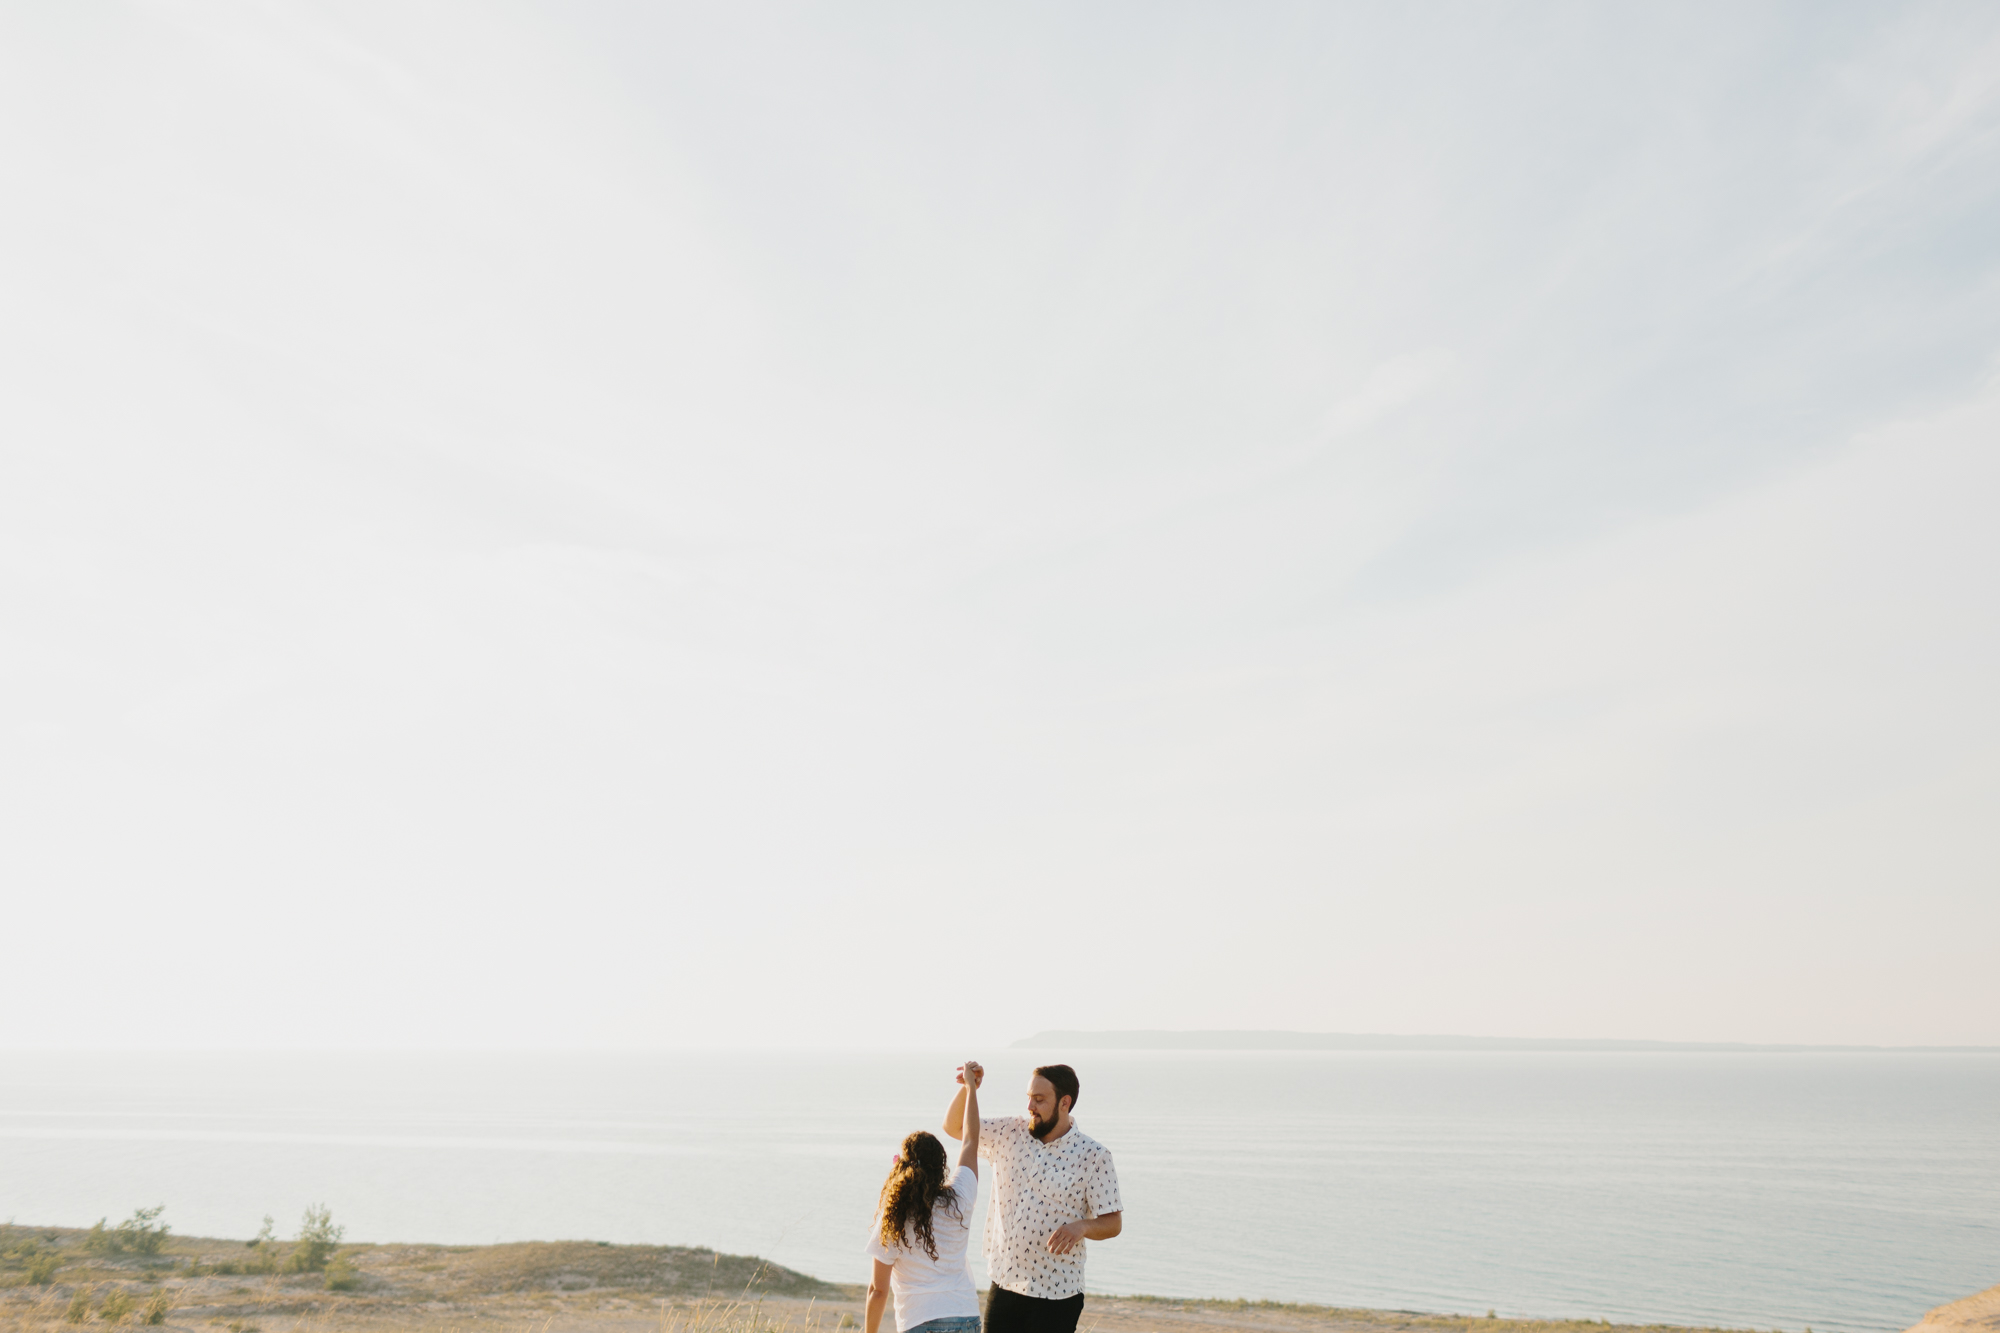 Northern Michigan Sleeping Bear Dunes Wedding Engagement Photographer Mae Stier-010.jpg